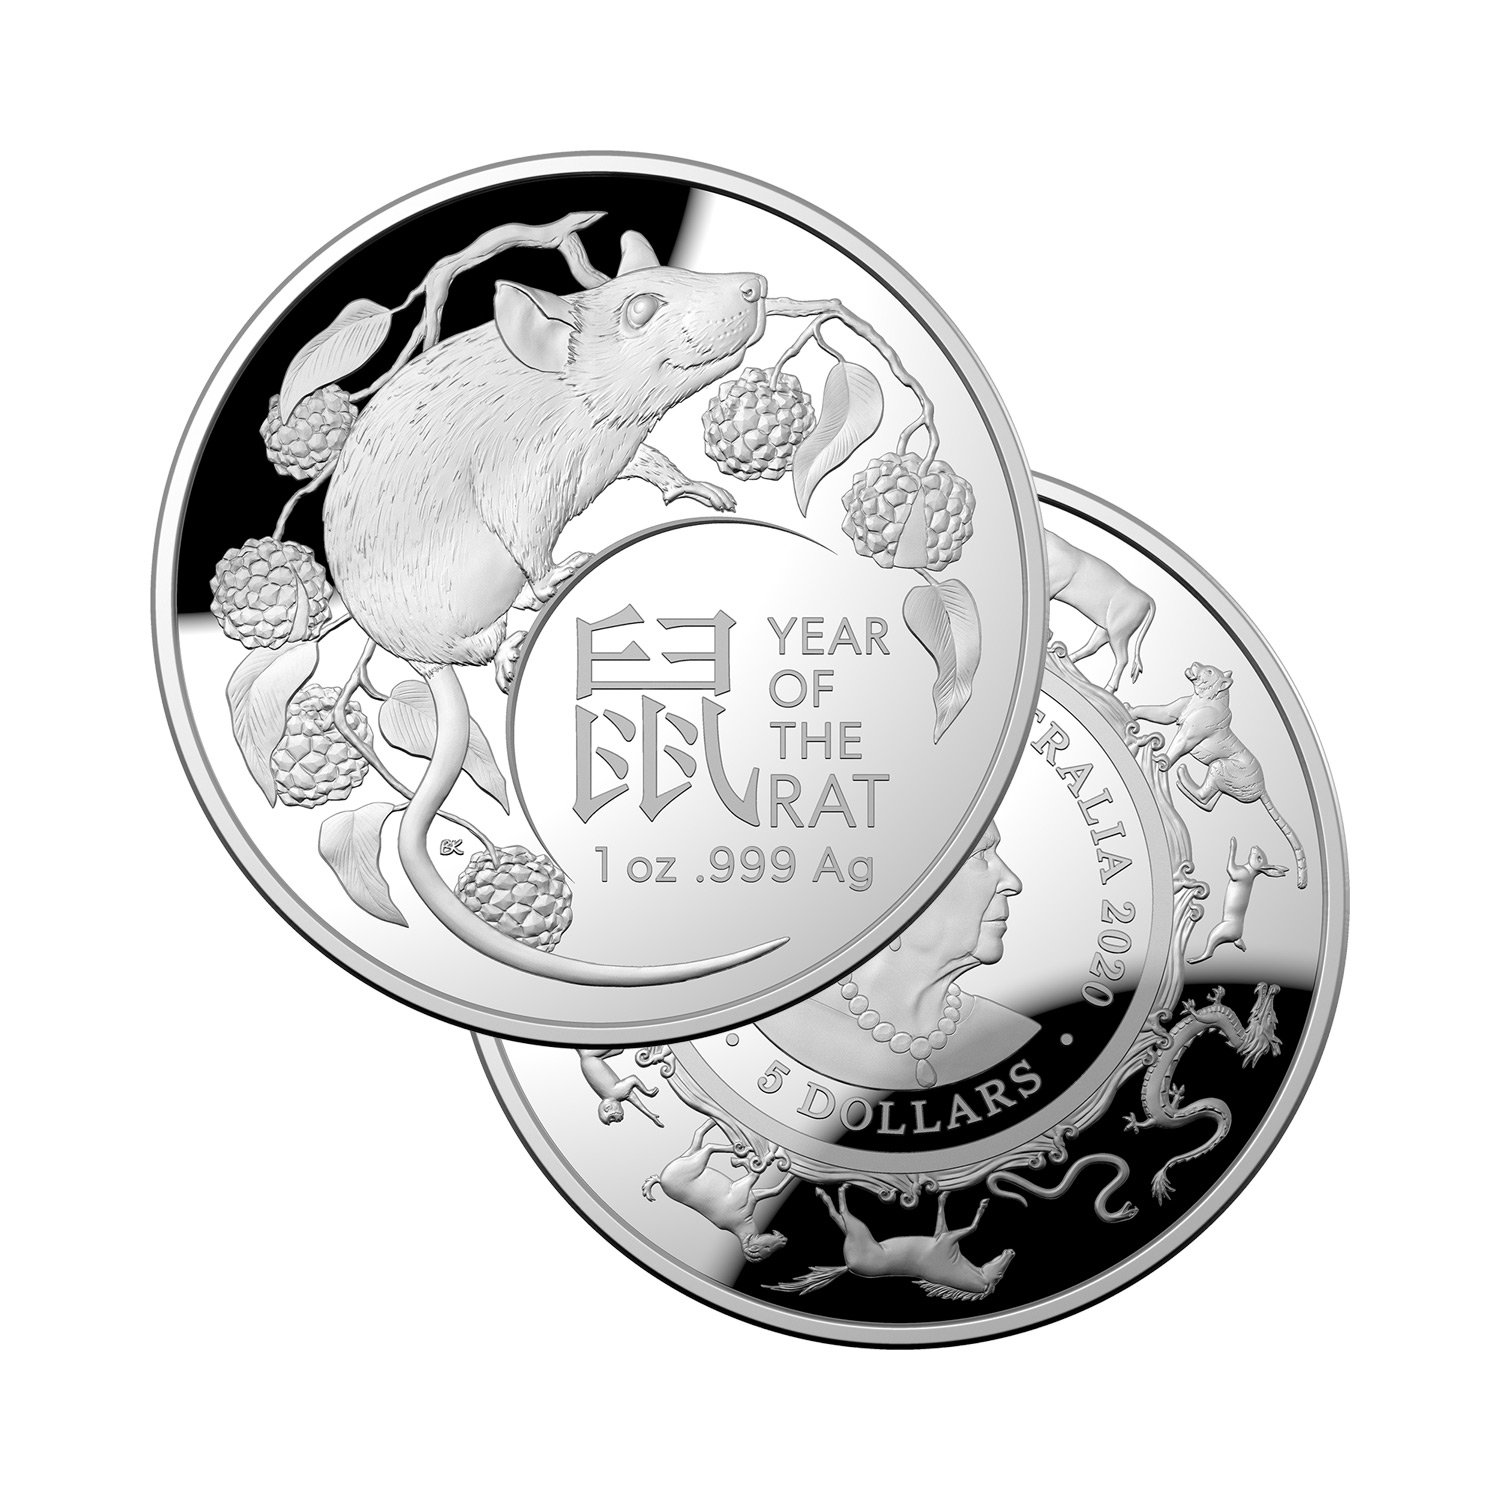 Coin Show Calendar 2020.2020 Lny Year Of The Rat 5 1oz Silver Proof Domed Coin